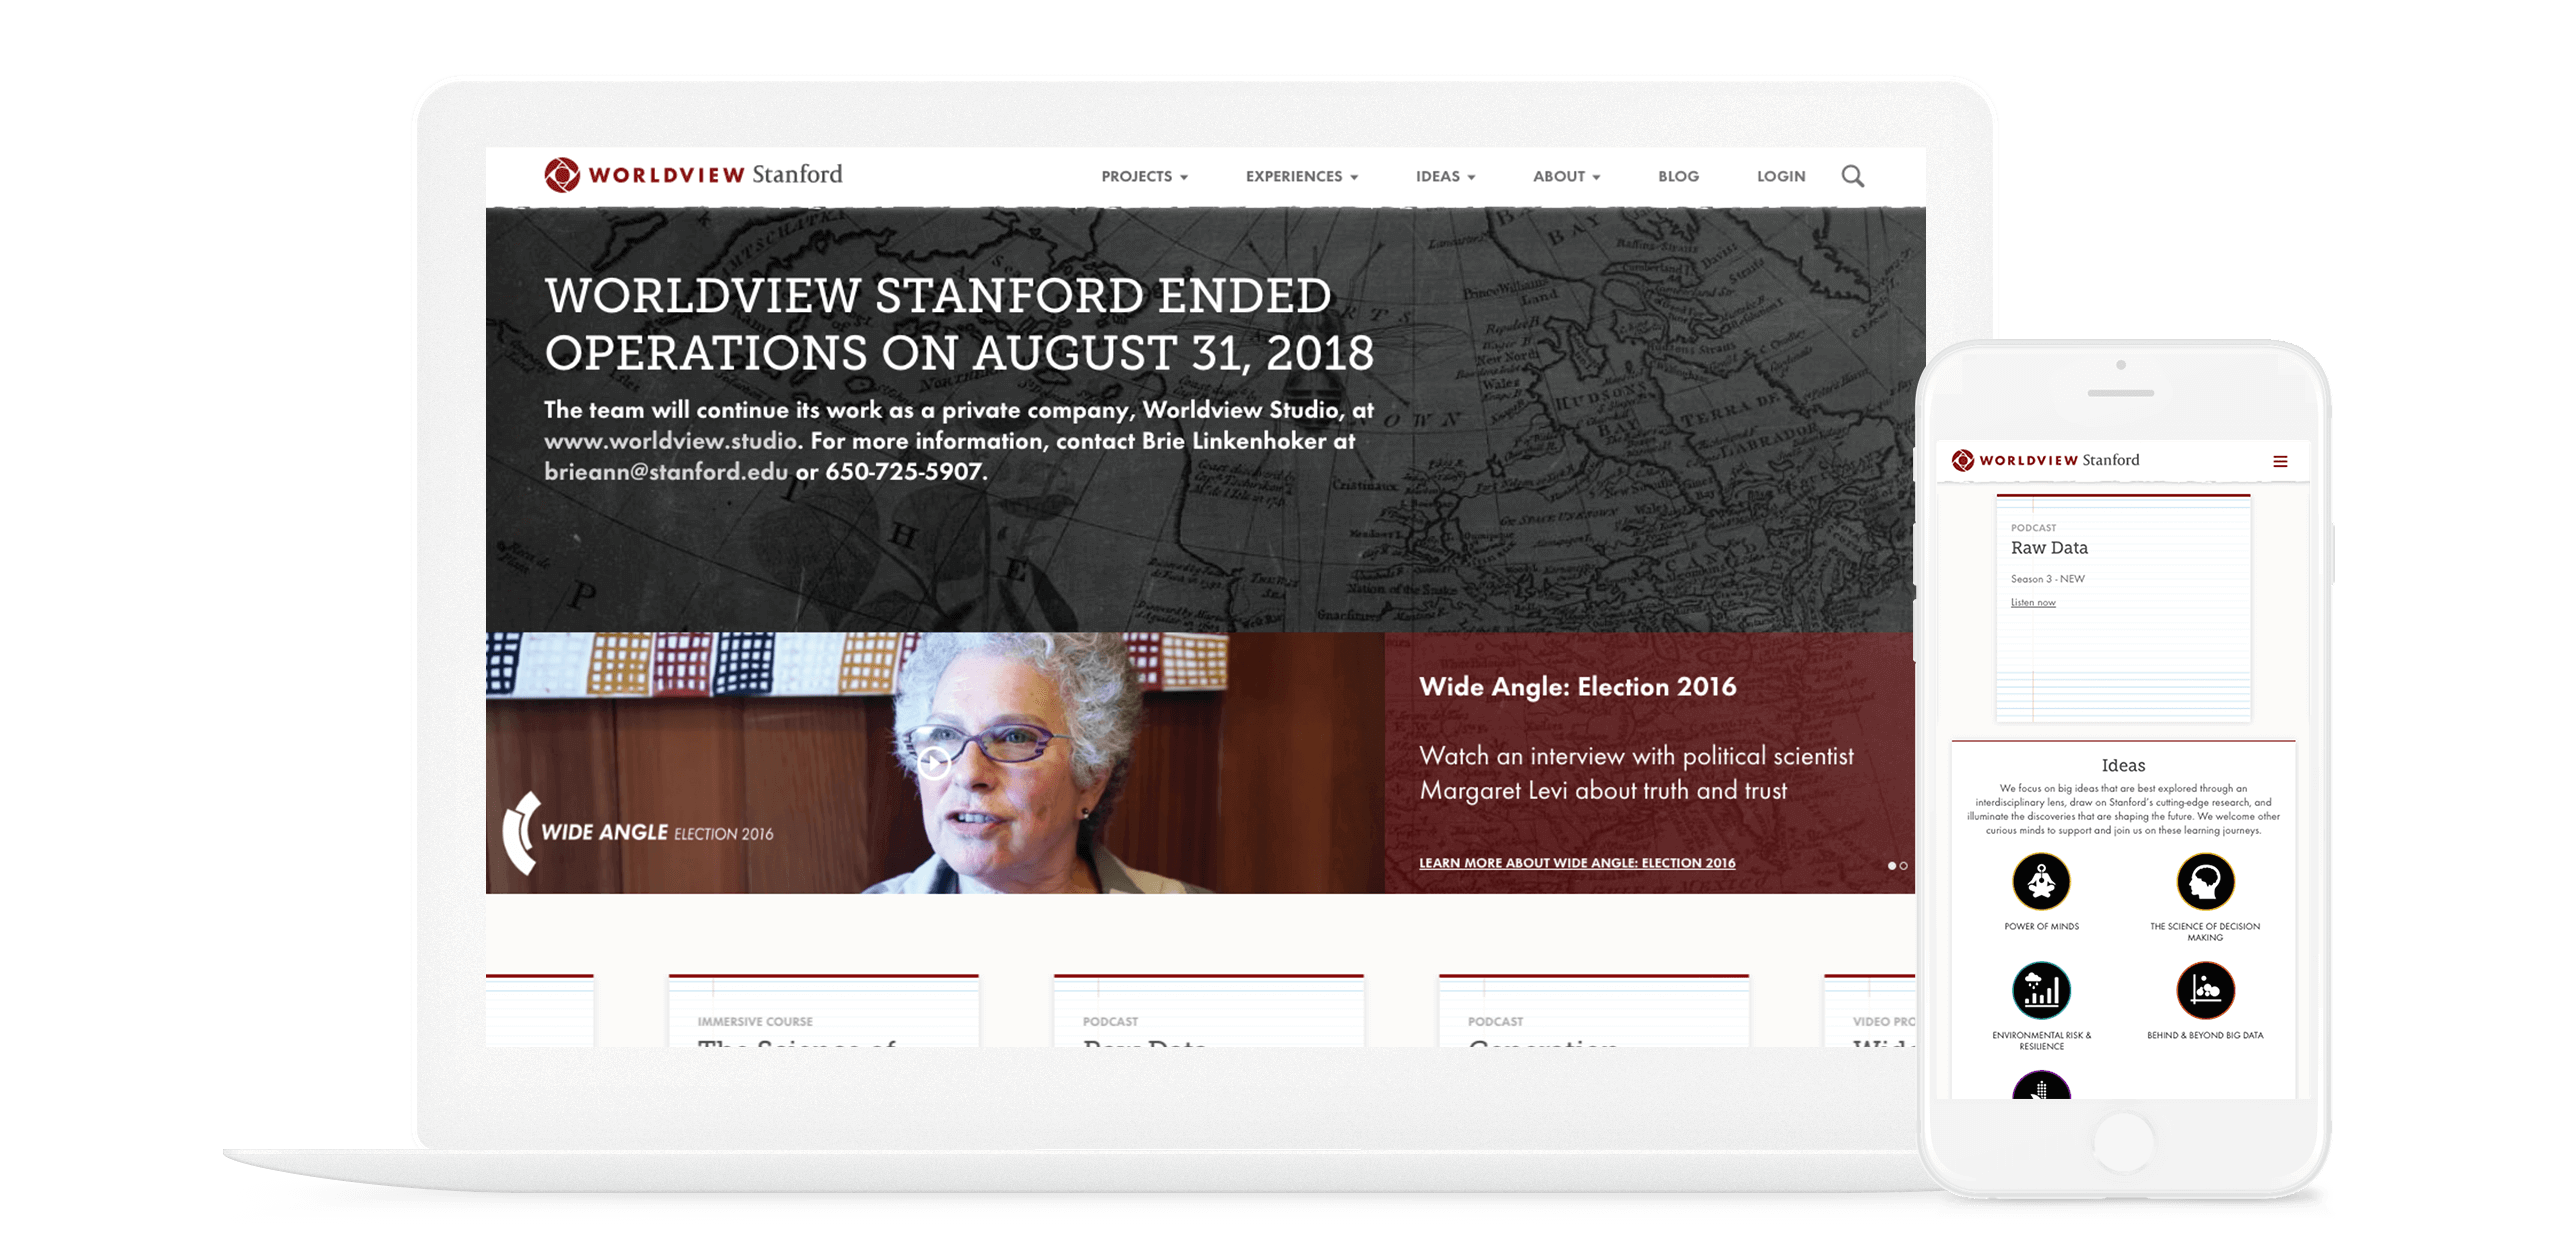 Image of Worldview Stanford home page